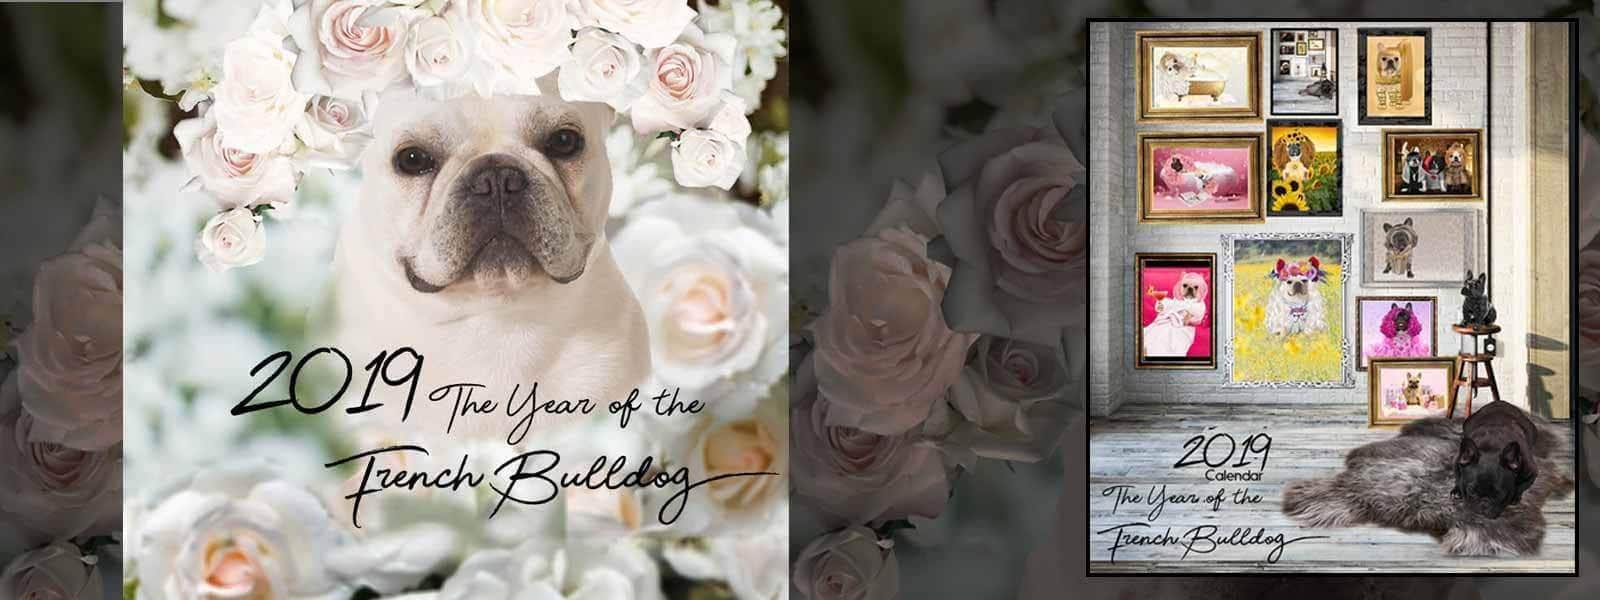 Year of the French Bulldog Calendar for 2019 Now Available